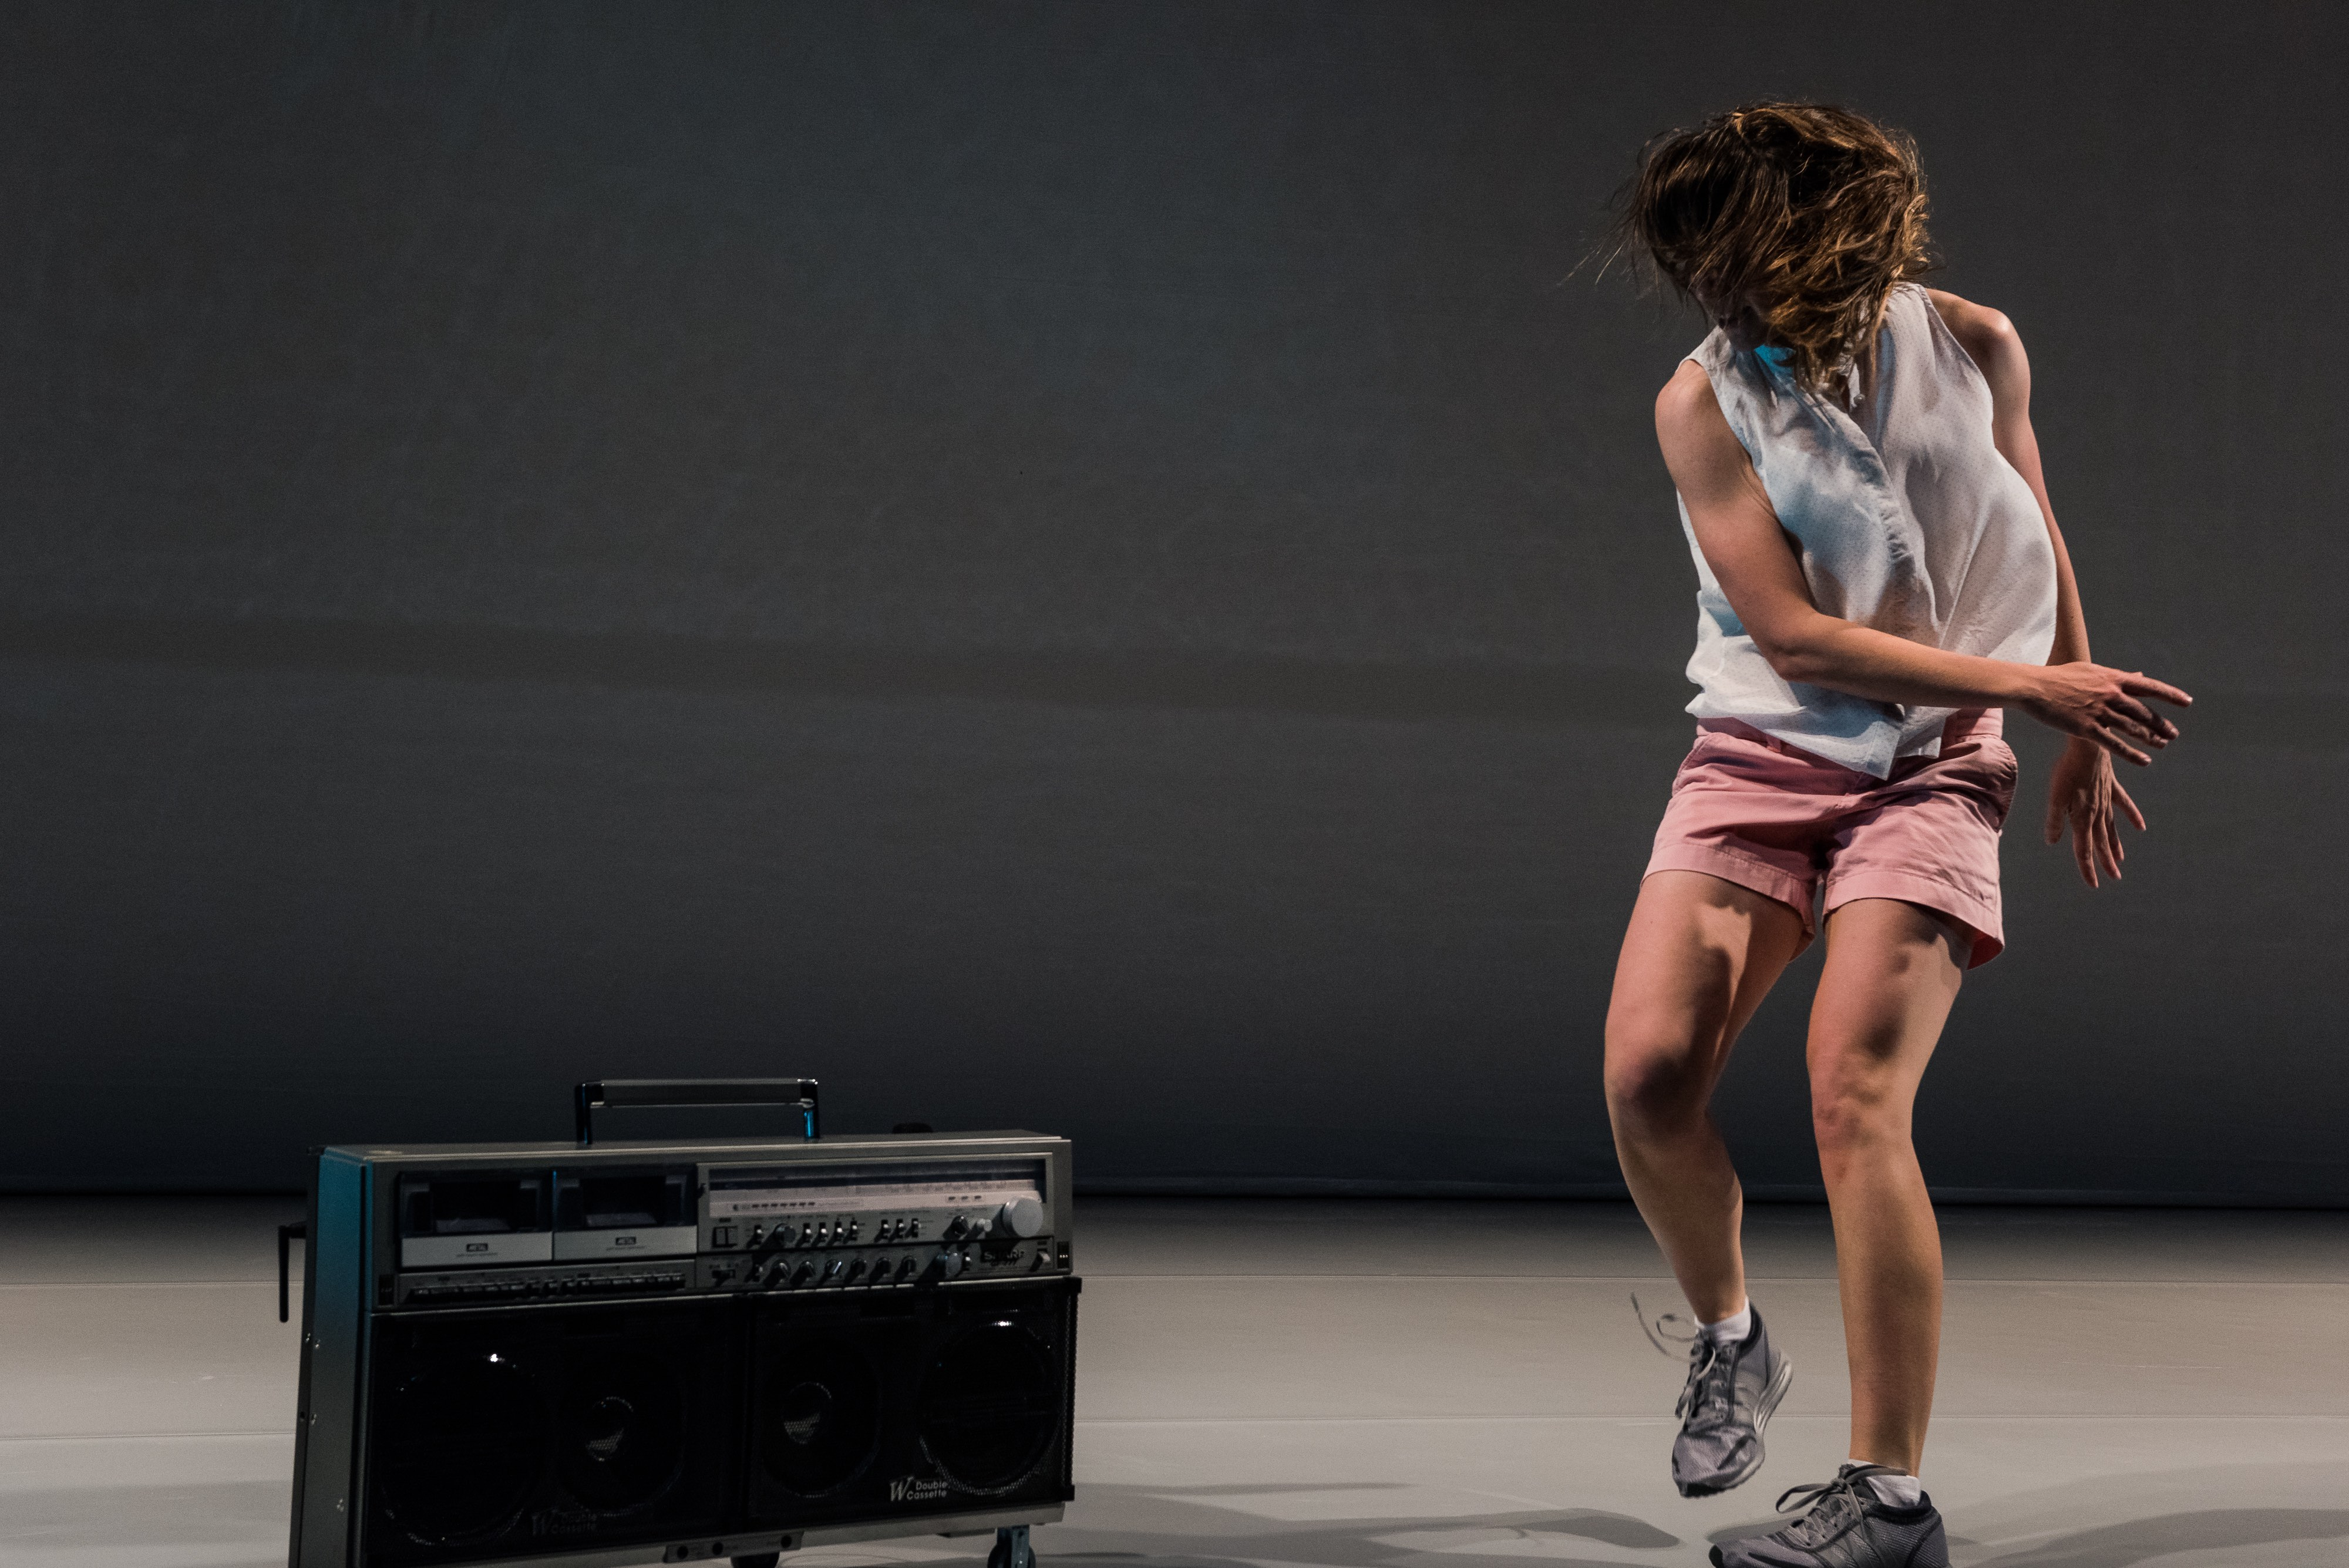 performer in white and pink dancing next to speaker